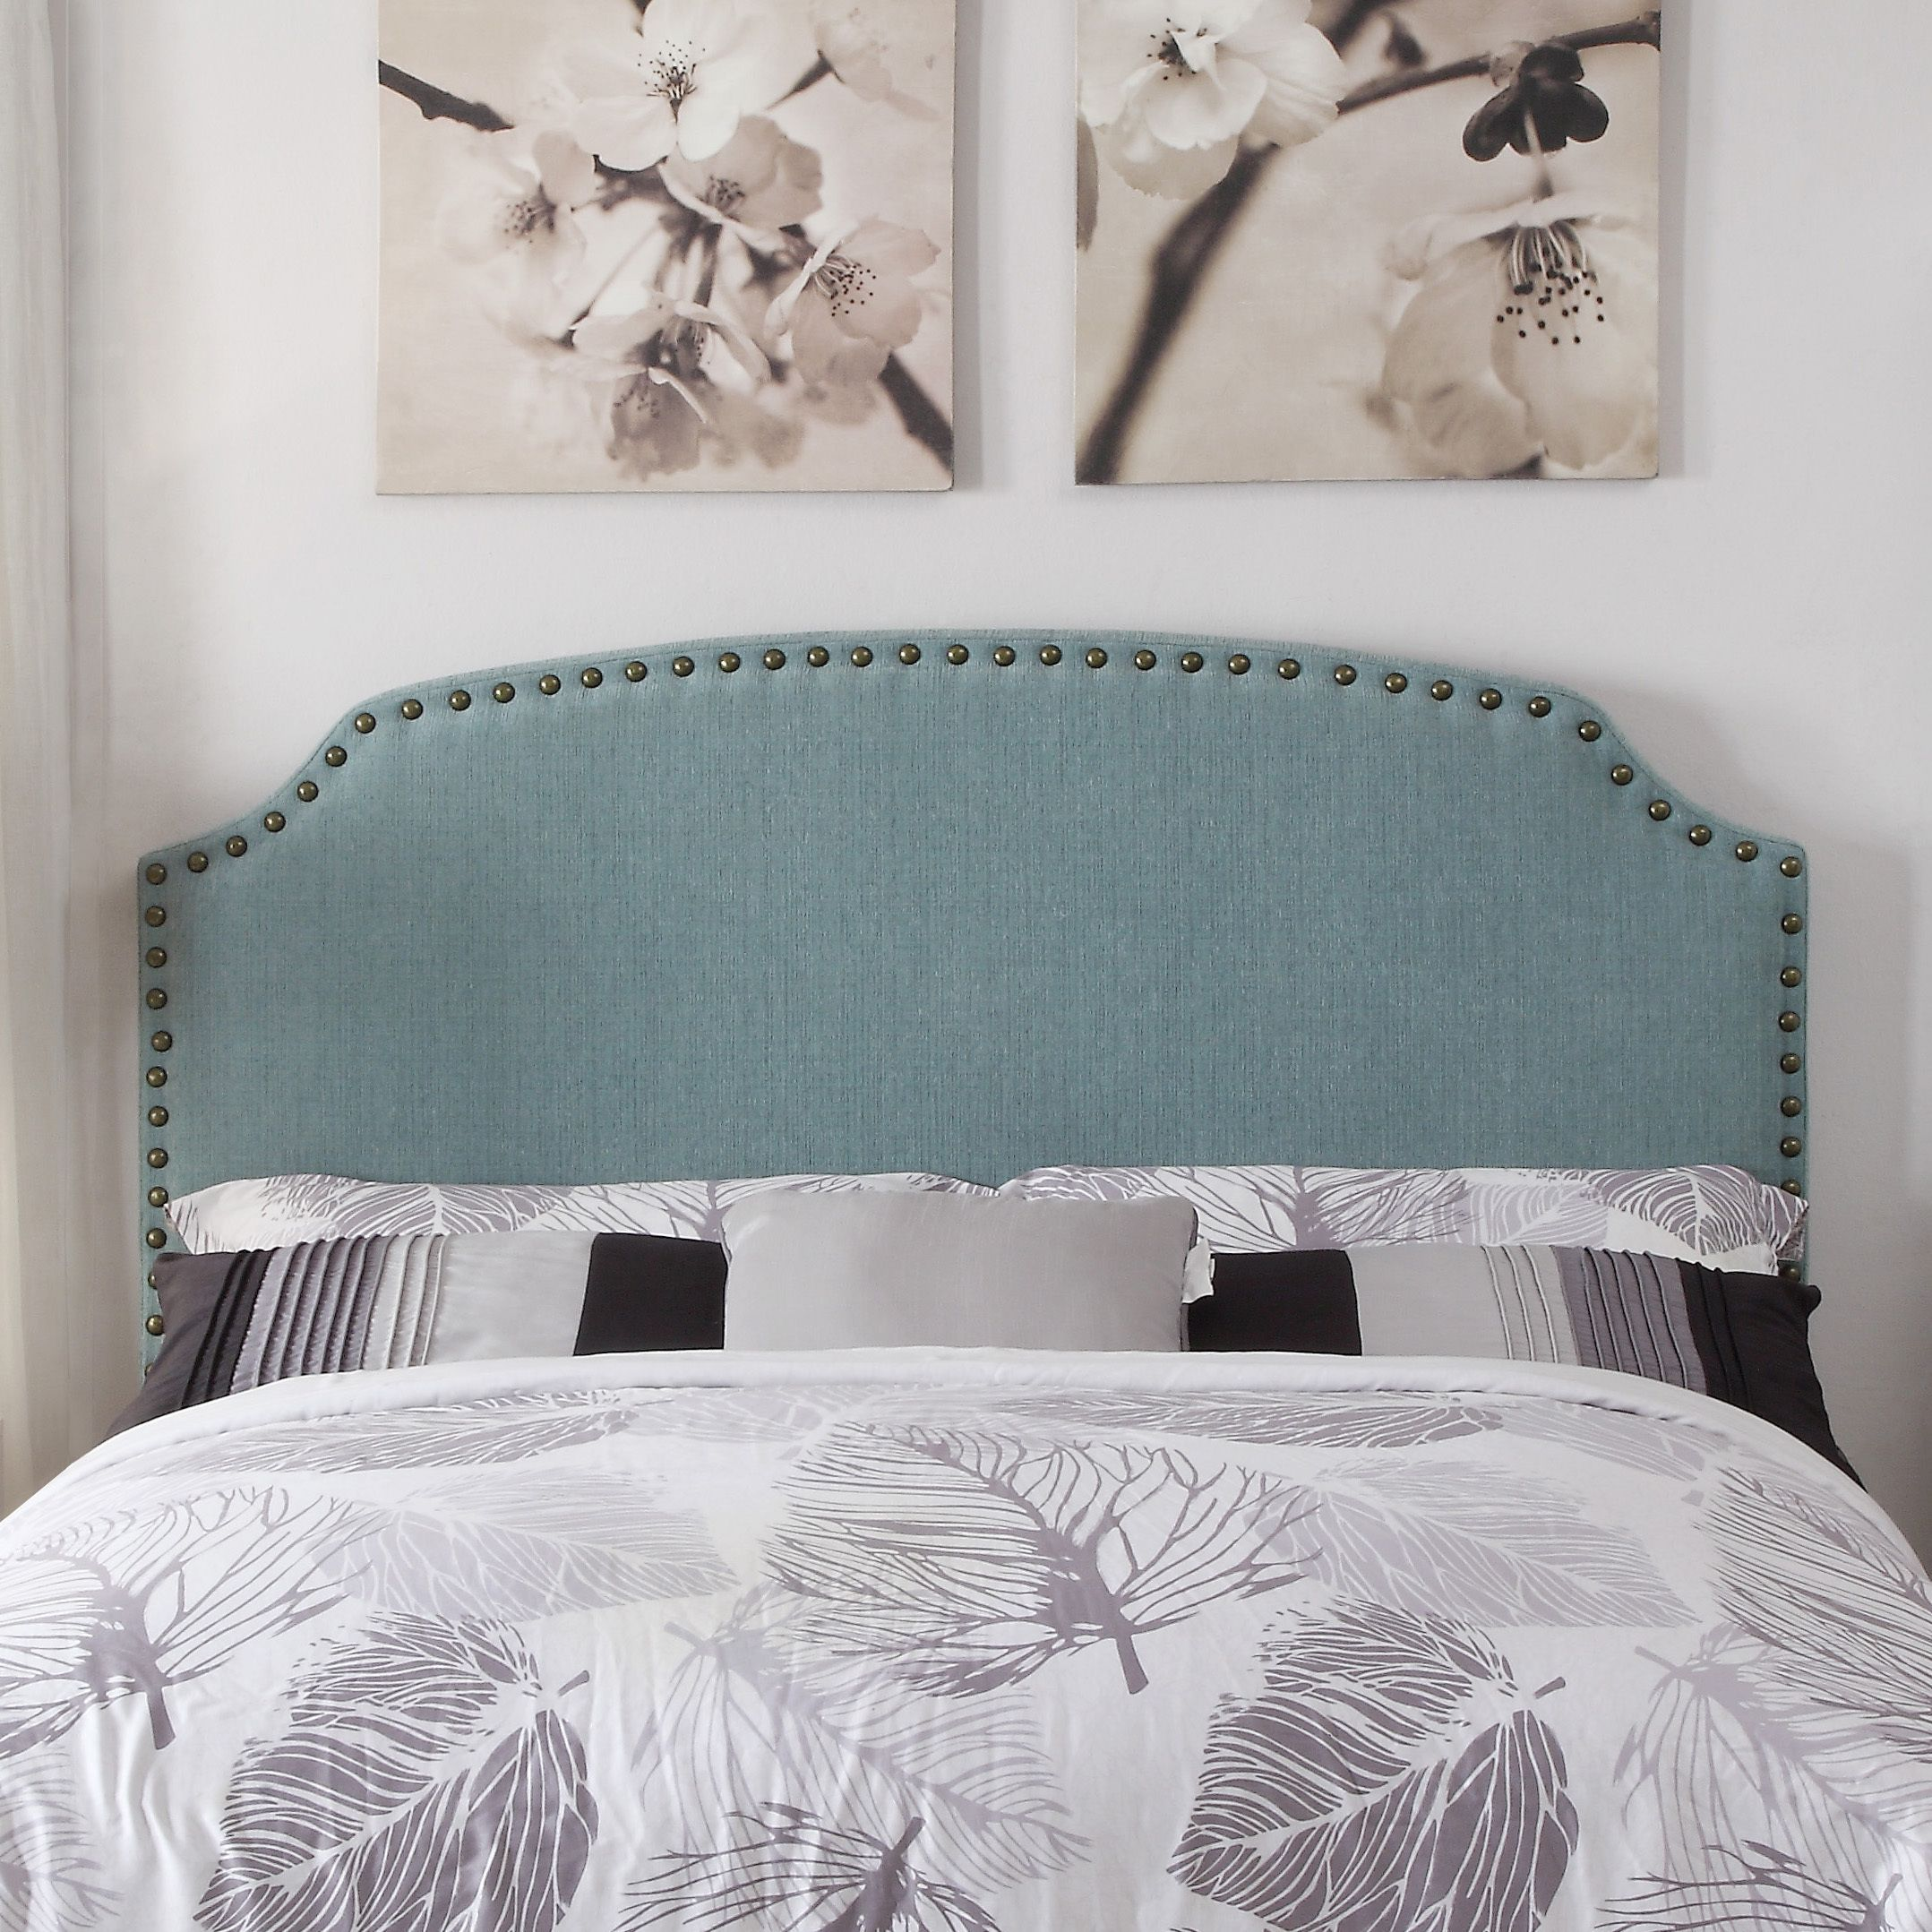 New Cool Headboards for Beds